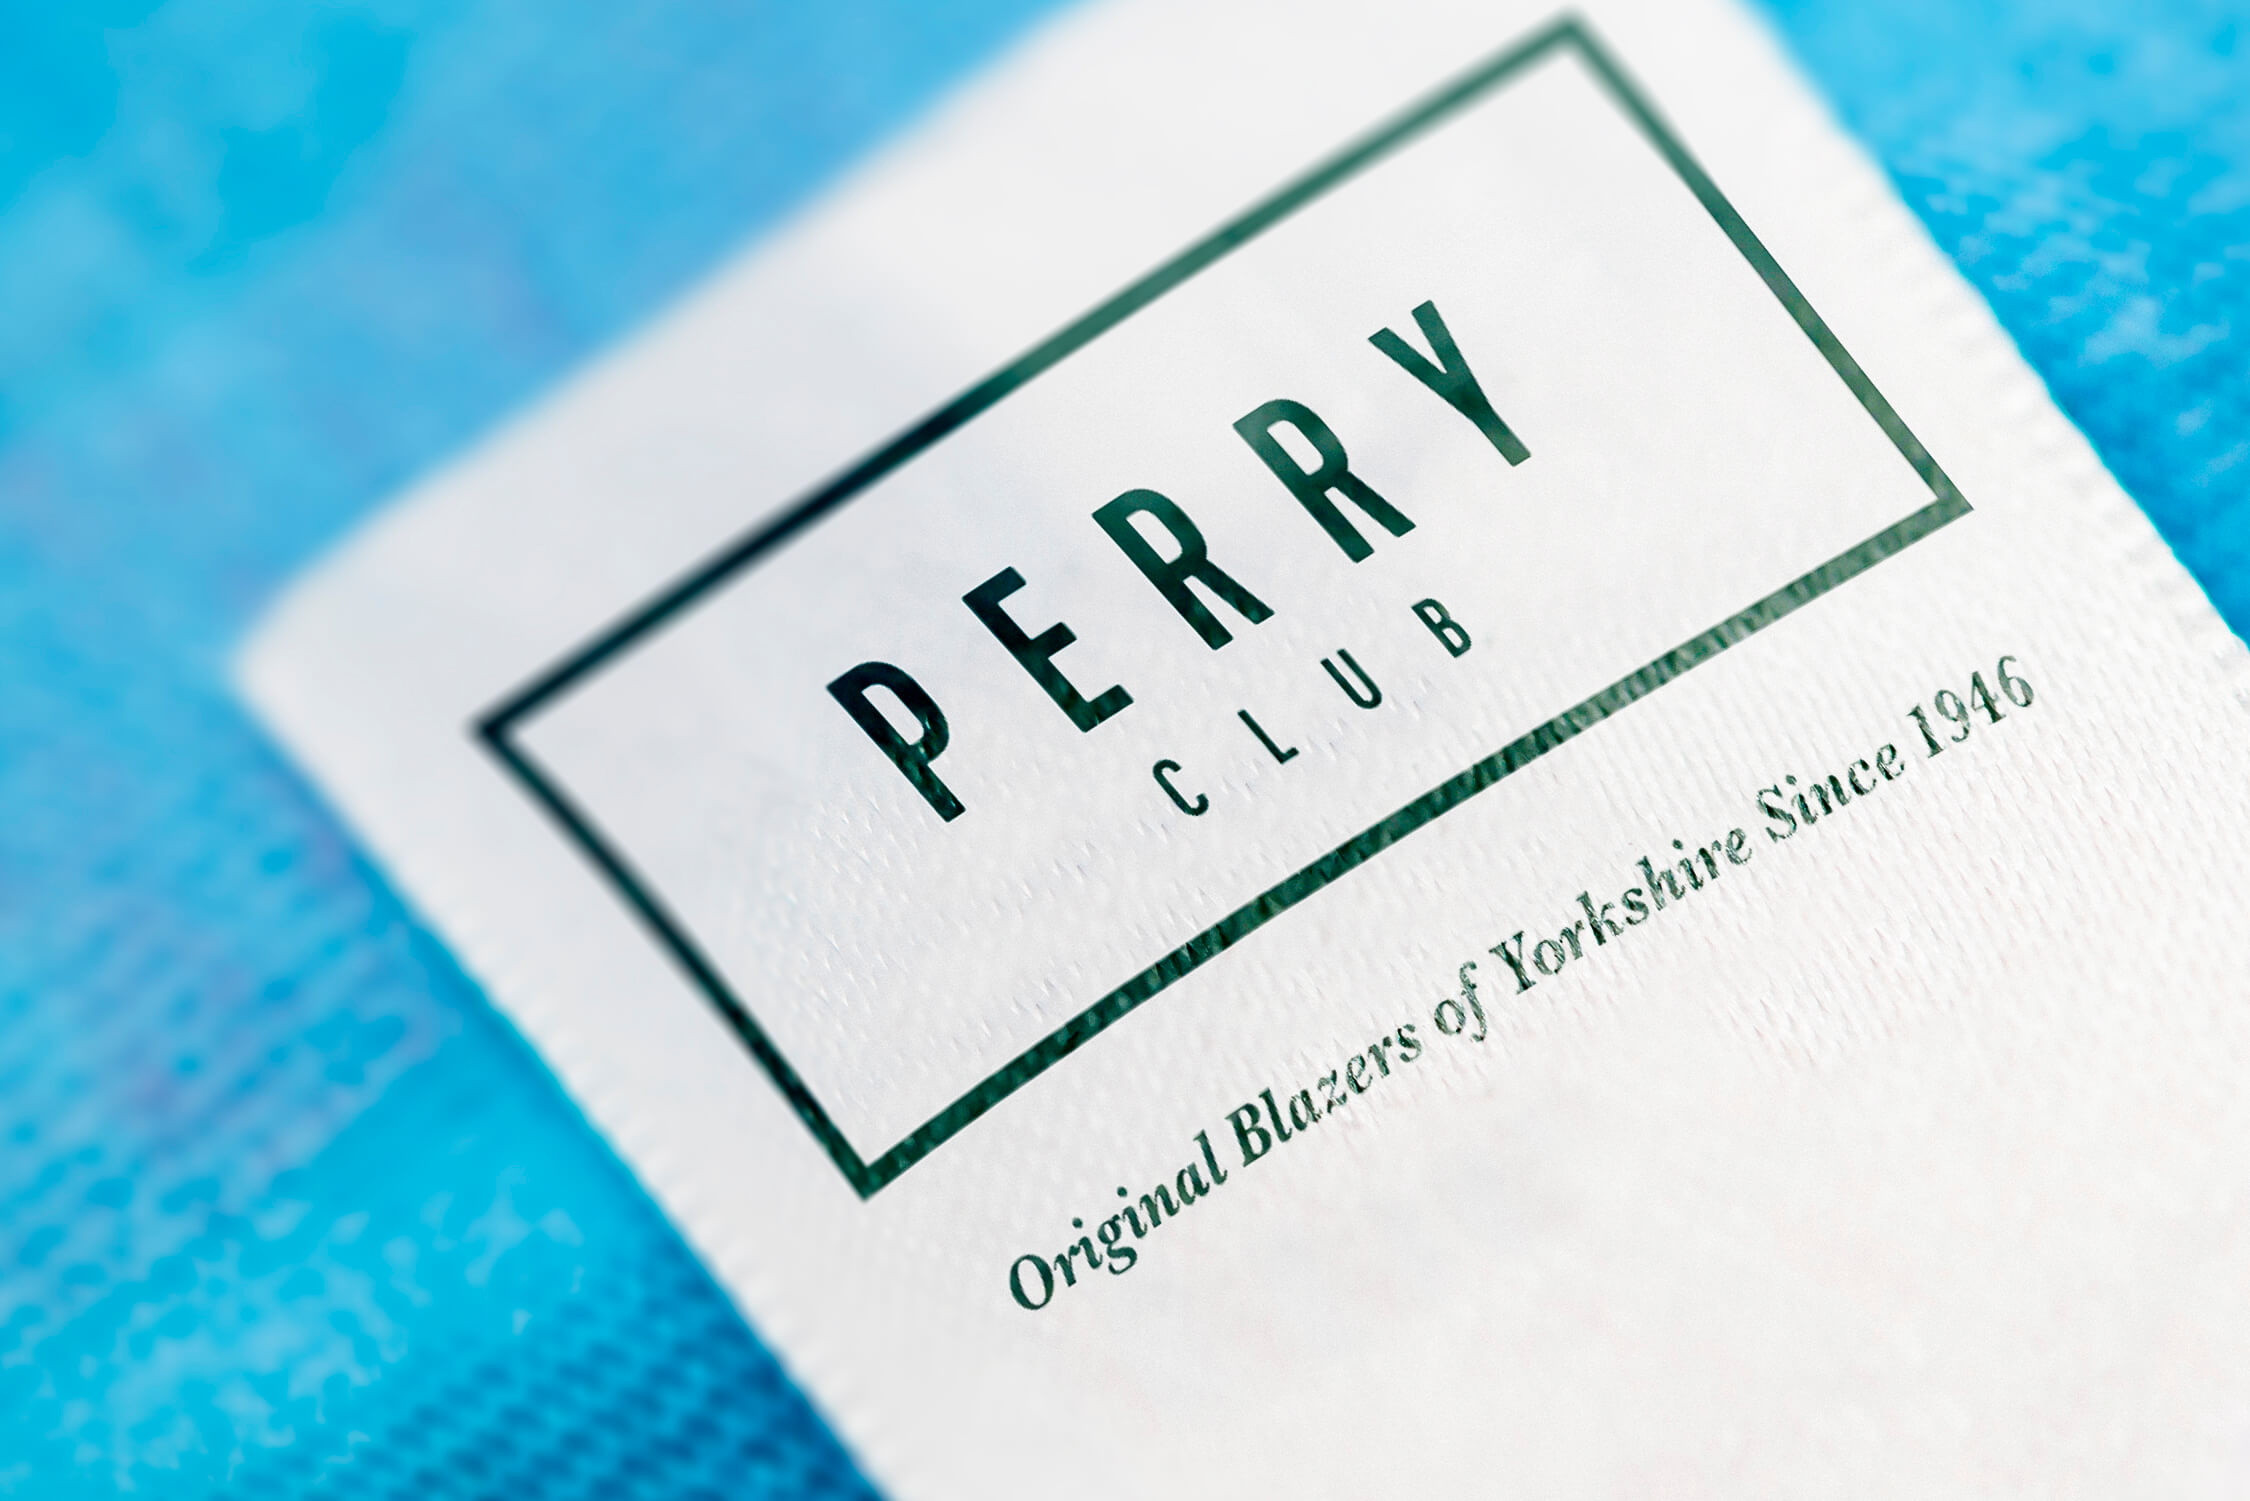 Perry_Club_Image_3.jpg